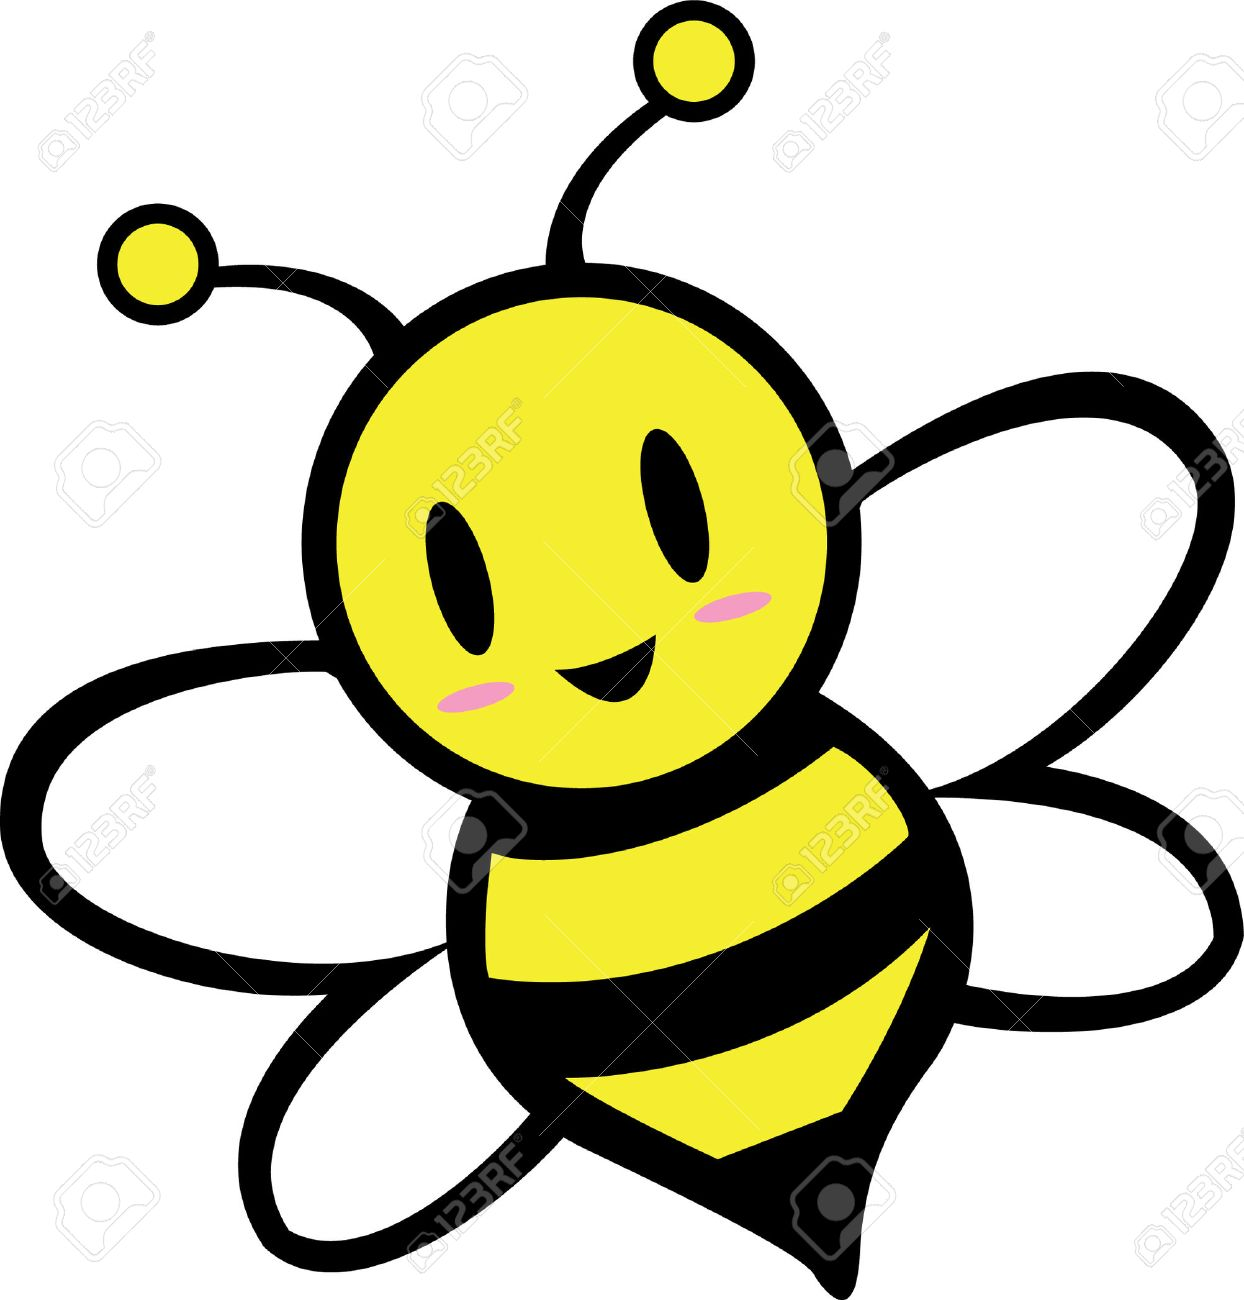 1244x1300 Improved Cartoon Images Of Bees Bee Royalty Fr